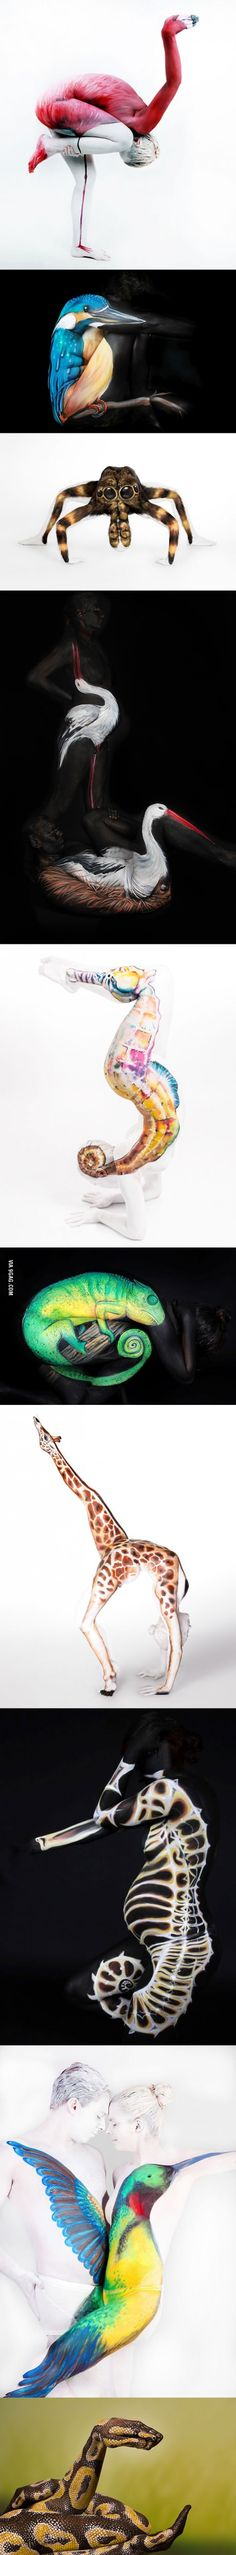 Animal Body Art